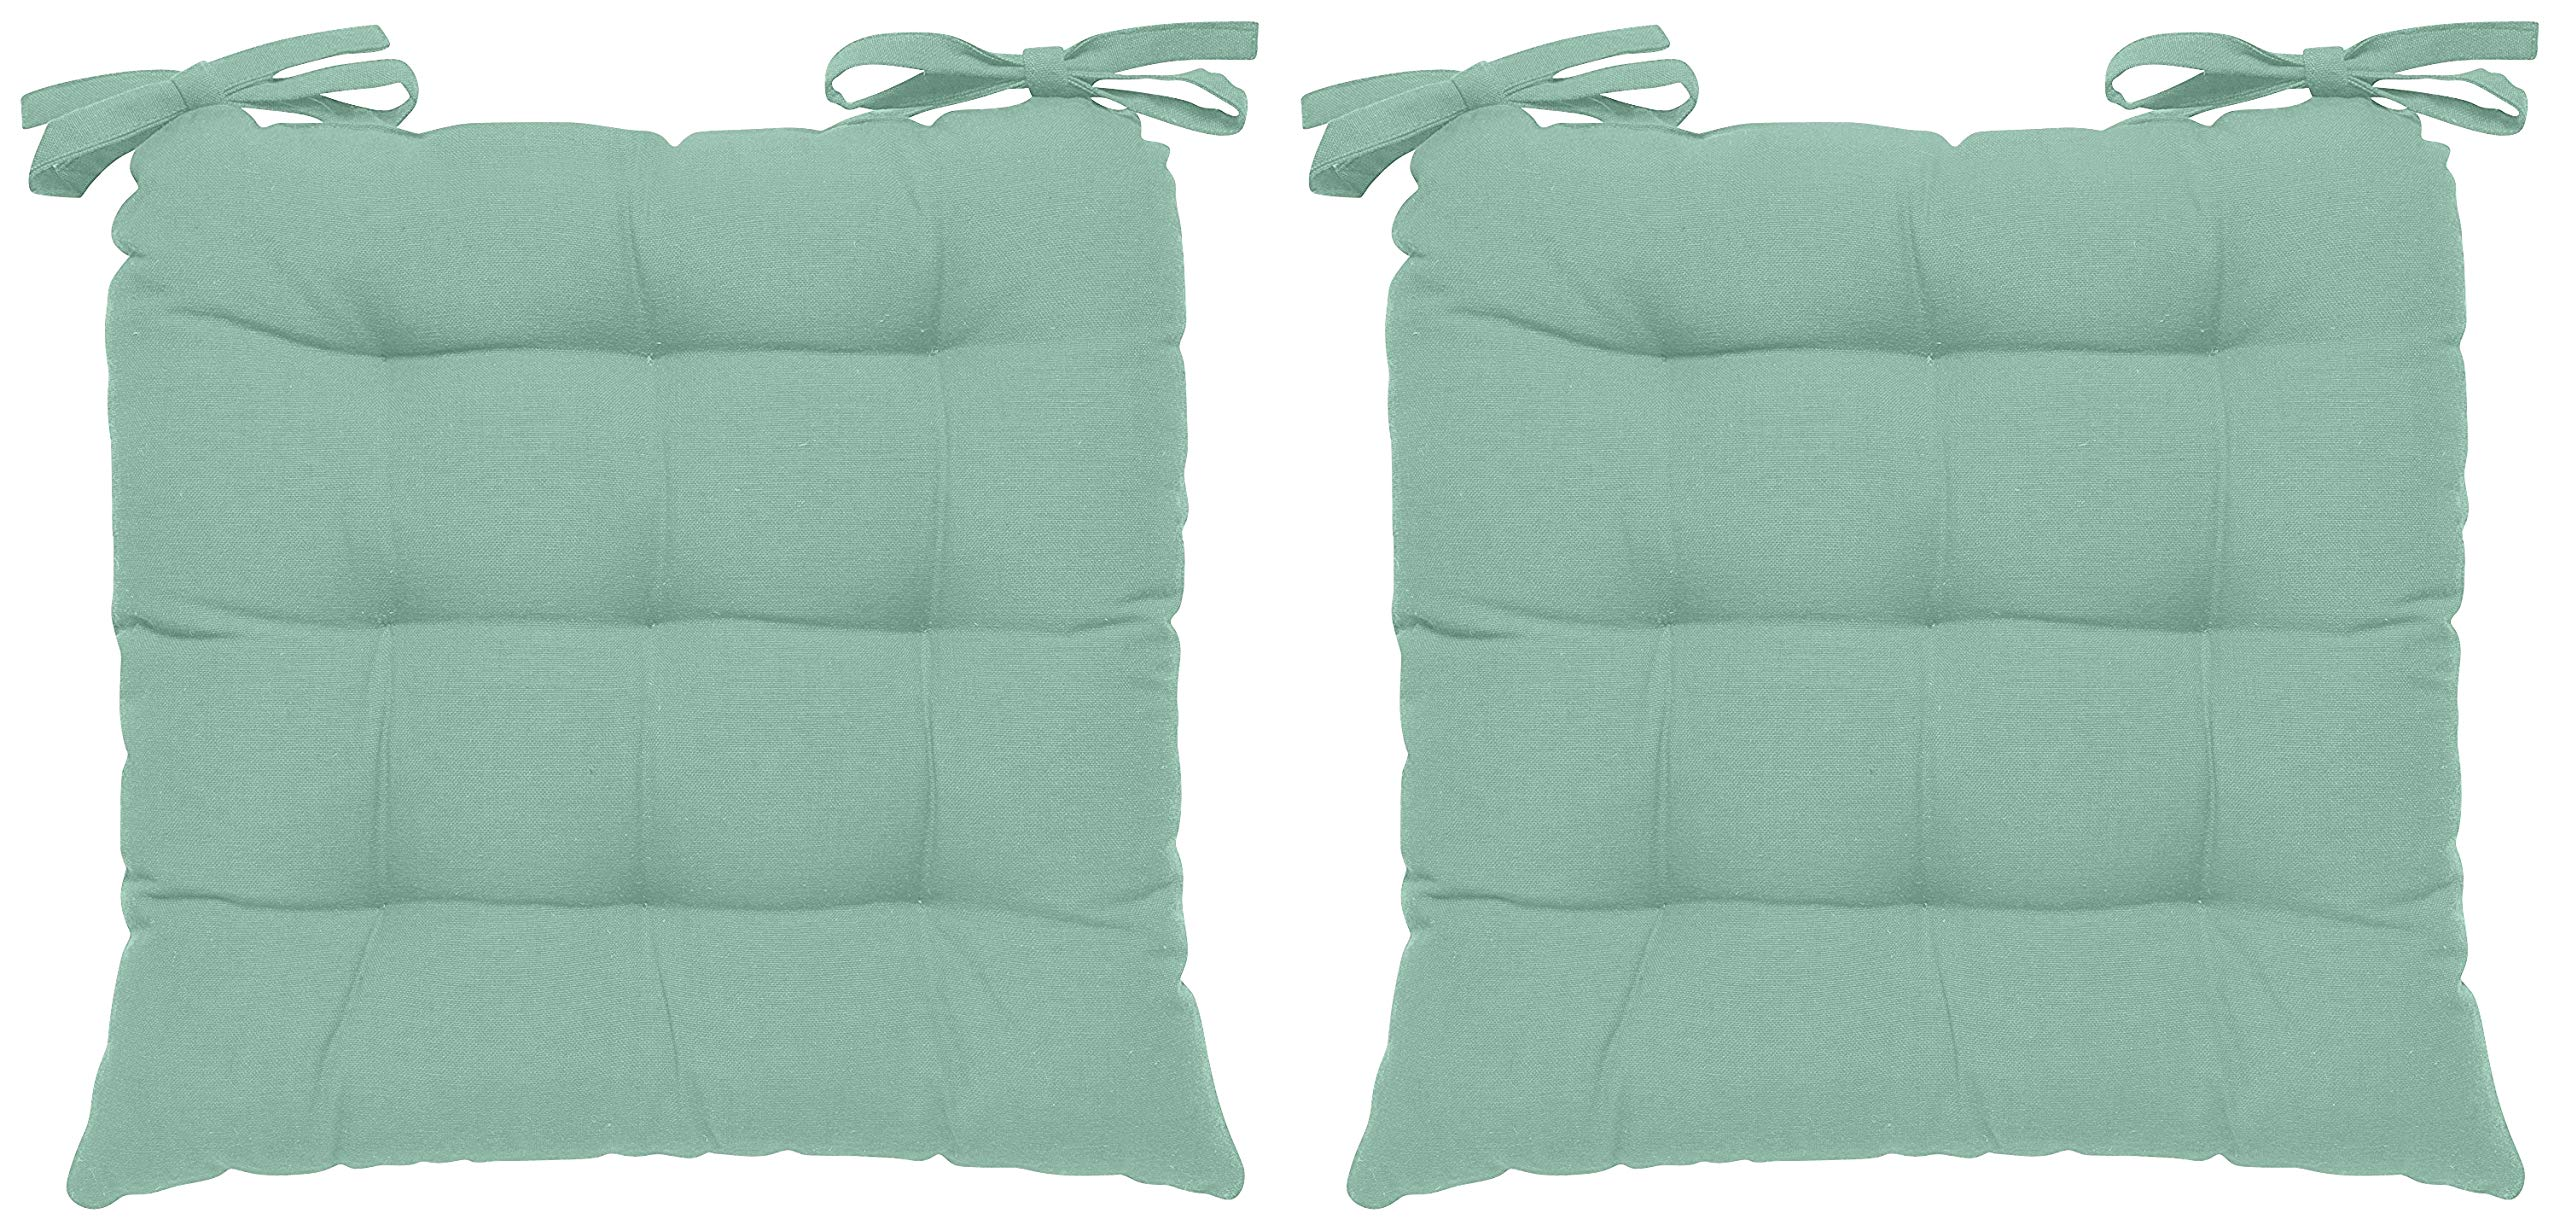 Encasa Homes 2 pcs Chair Pads 40x40x6 cm - Mint Green - Dyed Canvas Square Seat Cushions with Thick Cotton Filler & Ties, Large Size for Sitting, Pooja, Dining Table, Outdoor, Mint Green (B07MKFR832) Amazon Price History, Amazon Price Tracker